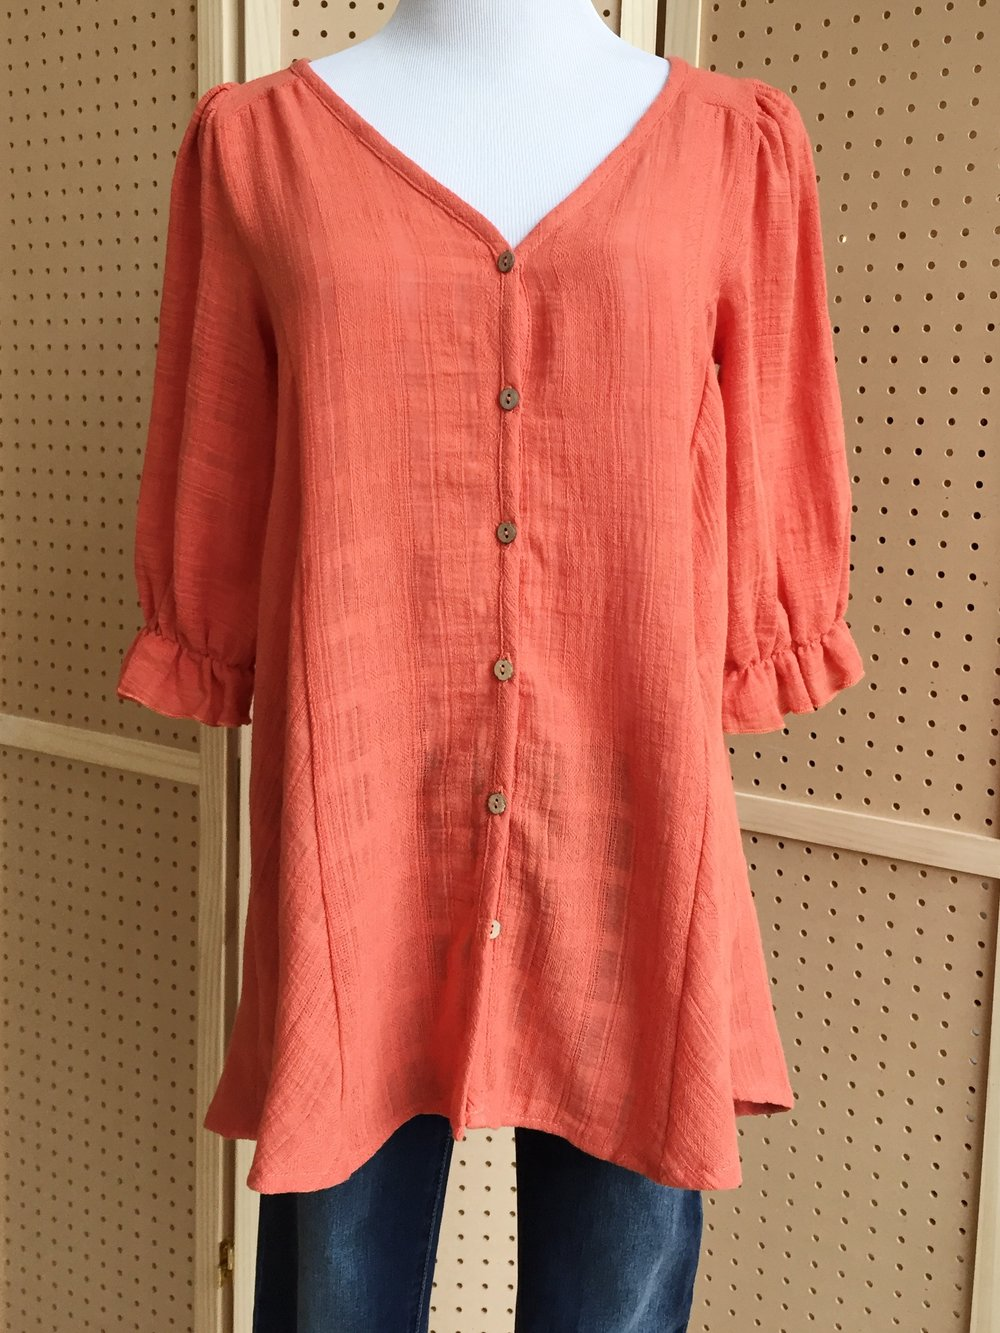 Pink Blouse ($38)